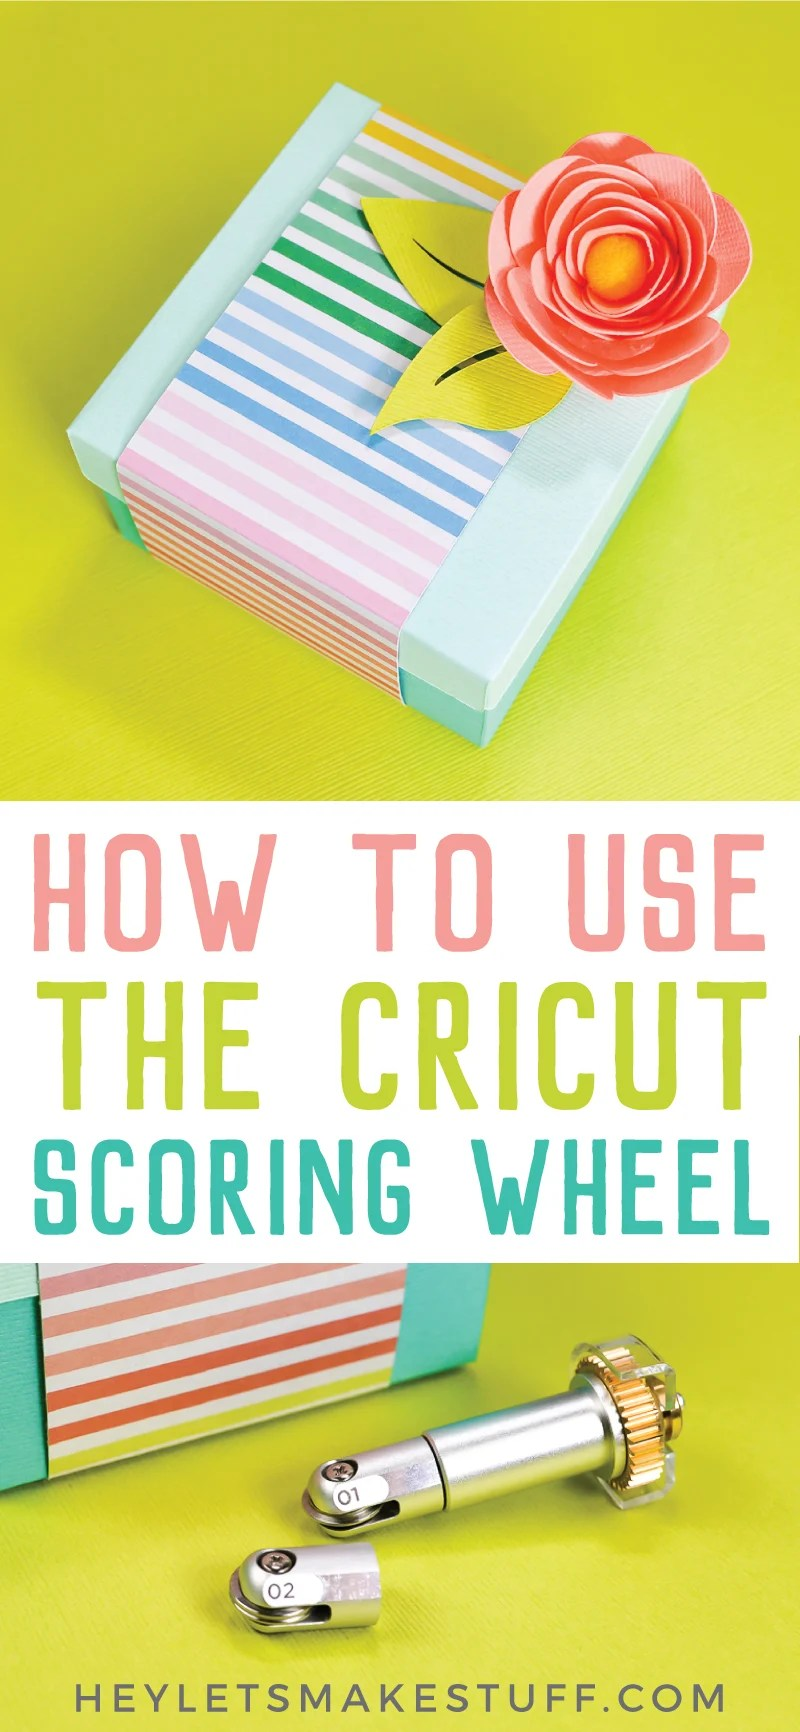 The new Cricut Scoring Wheel cures all of your scoring woes! If you're tired of  faint score lines or cracking materials, the Cricut Scoring Wheel is here to help! via @heyletsmakestuf